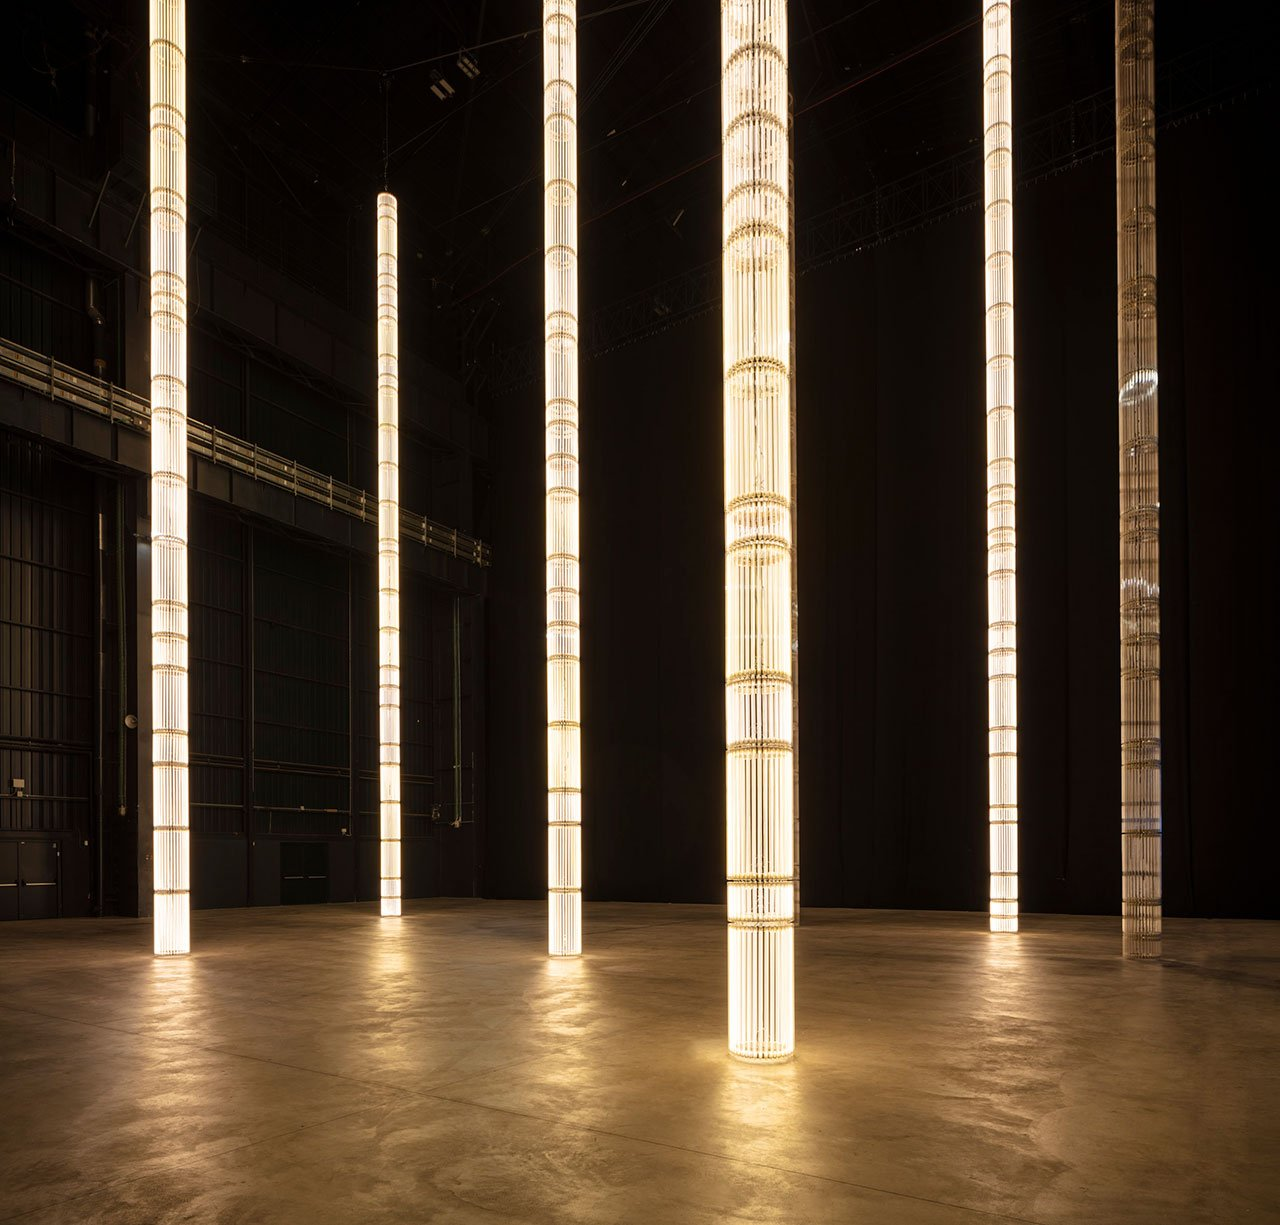 Cerith Wyn Evans, StarStarStar/Steer (totransversephoton), 2019. Installation view at Pirelli HangarBicocca, Milan, 2019. Courtesy of the artist; White Cube and Pirelli HangarBicocca. Produced with the technical support of INELCOM, Madrid. Photo: Agostino Osio